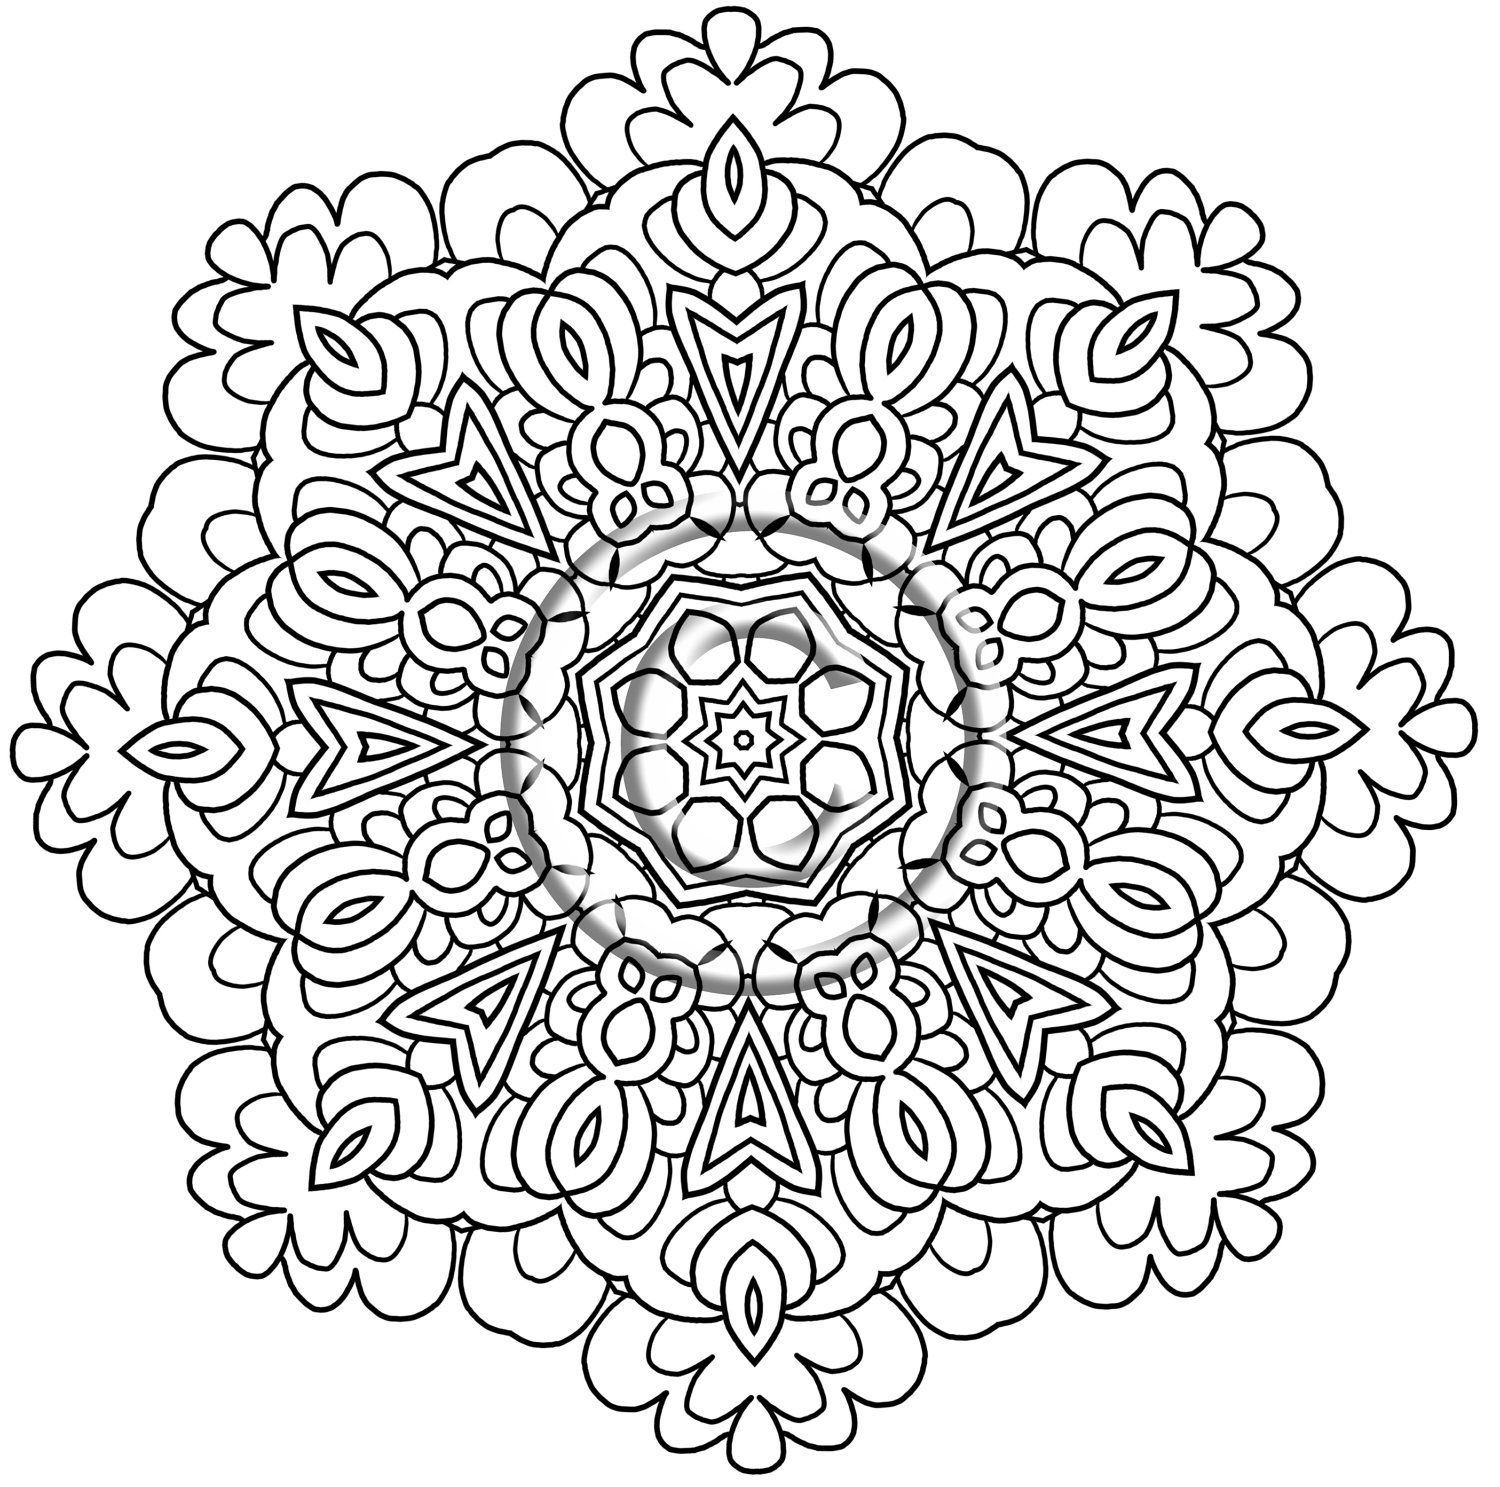 Coloring Pages Mandala Coloring Pages To Print mandala coloring pages to print futpal com 1000 images about on pinterest coloring